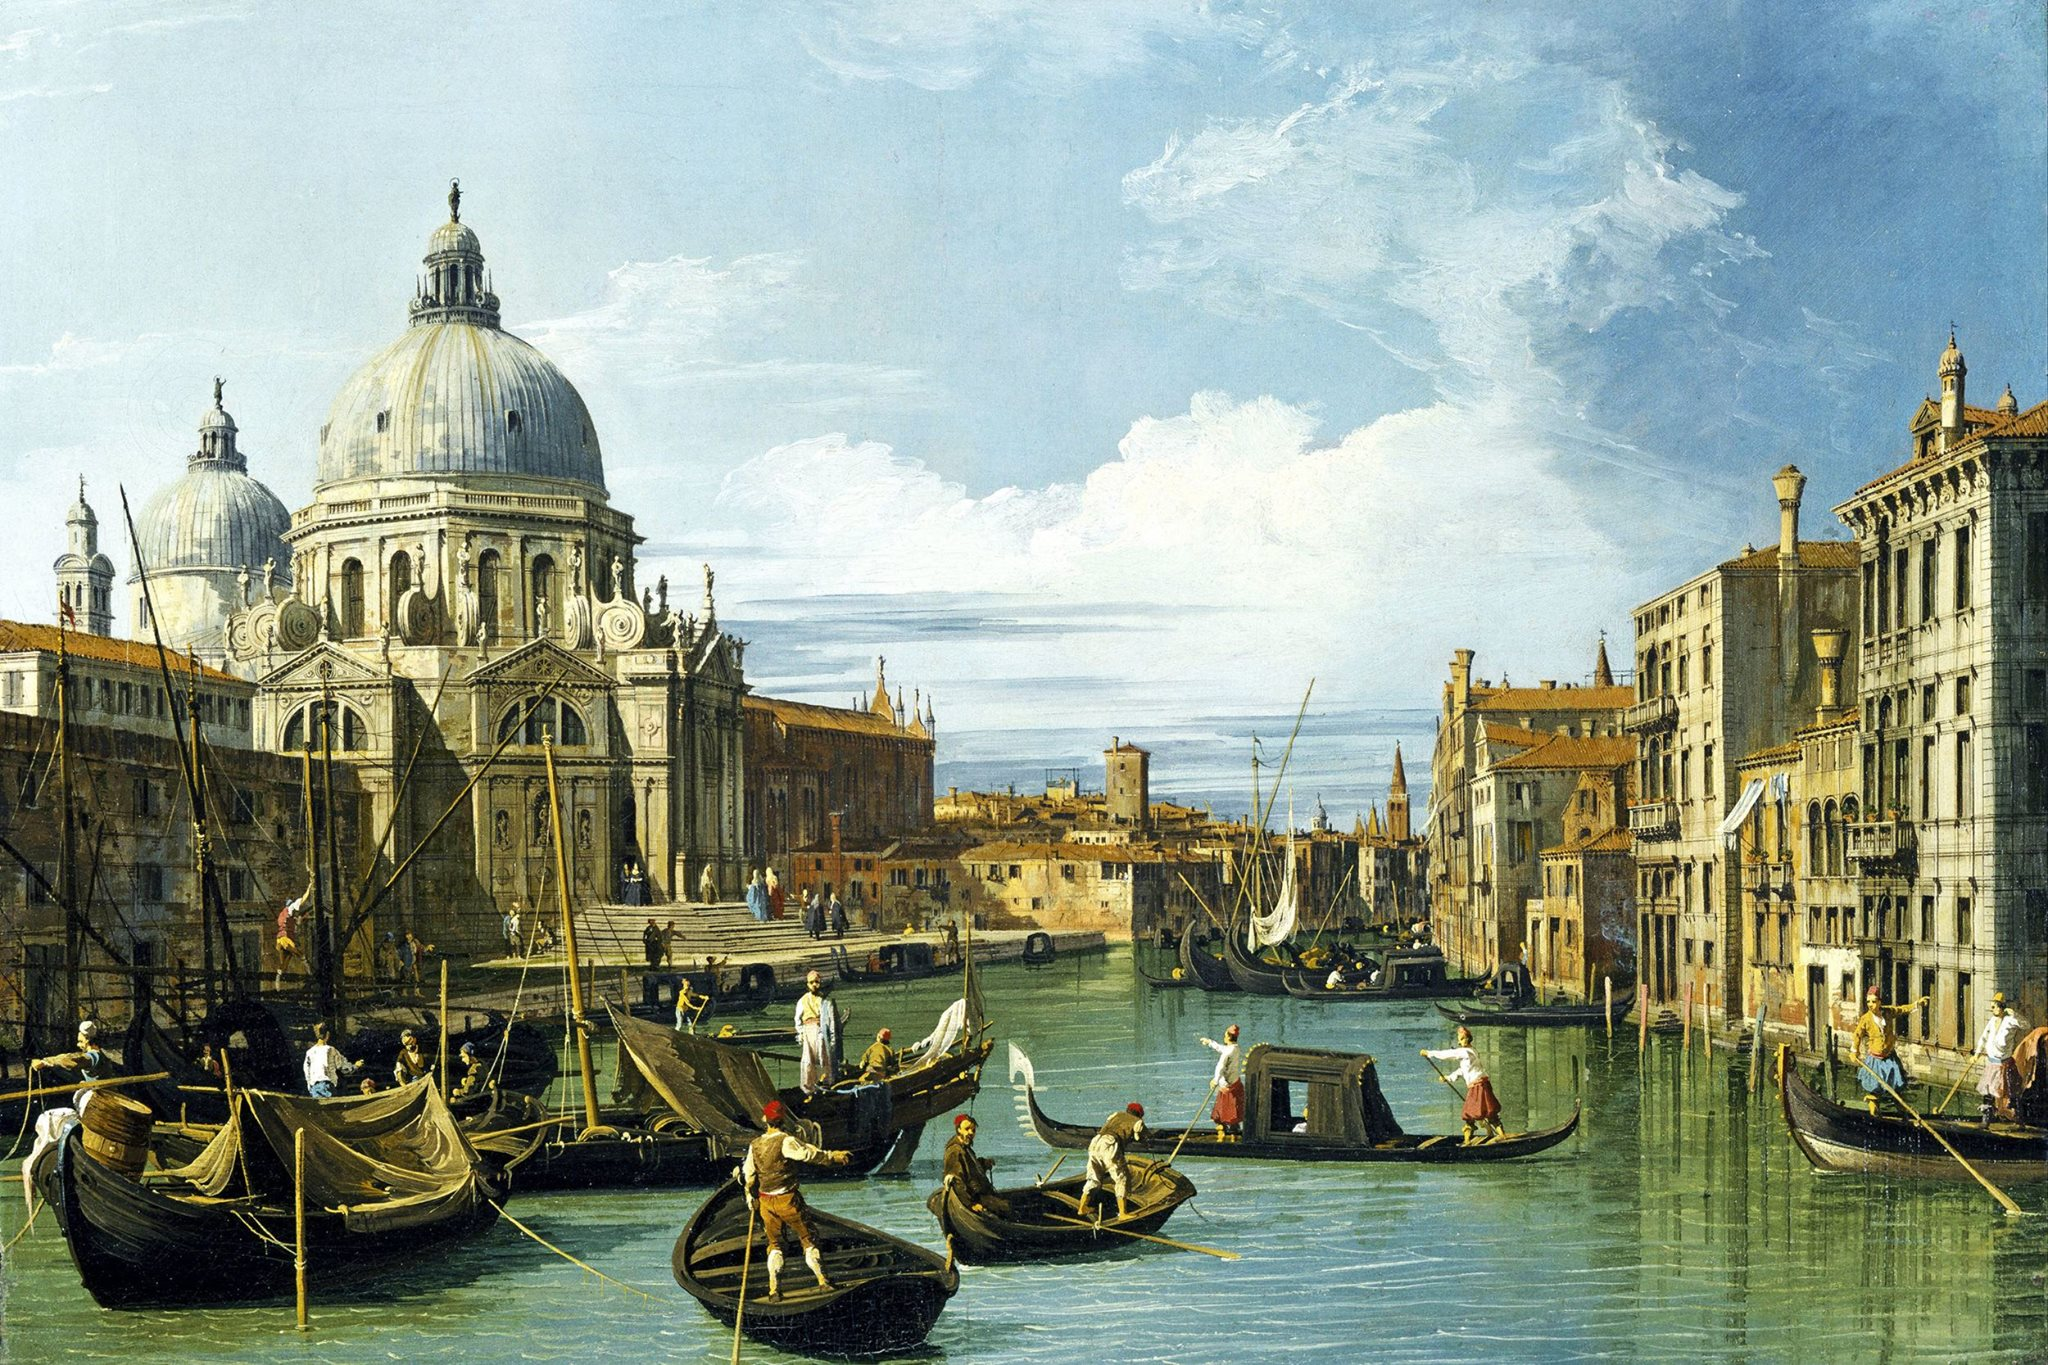 ITV SERIES 'GREAT ART' BEGINS ON 4 January: Canaletto & The Art of Venice